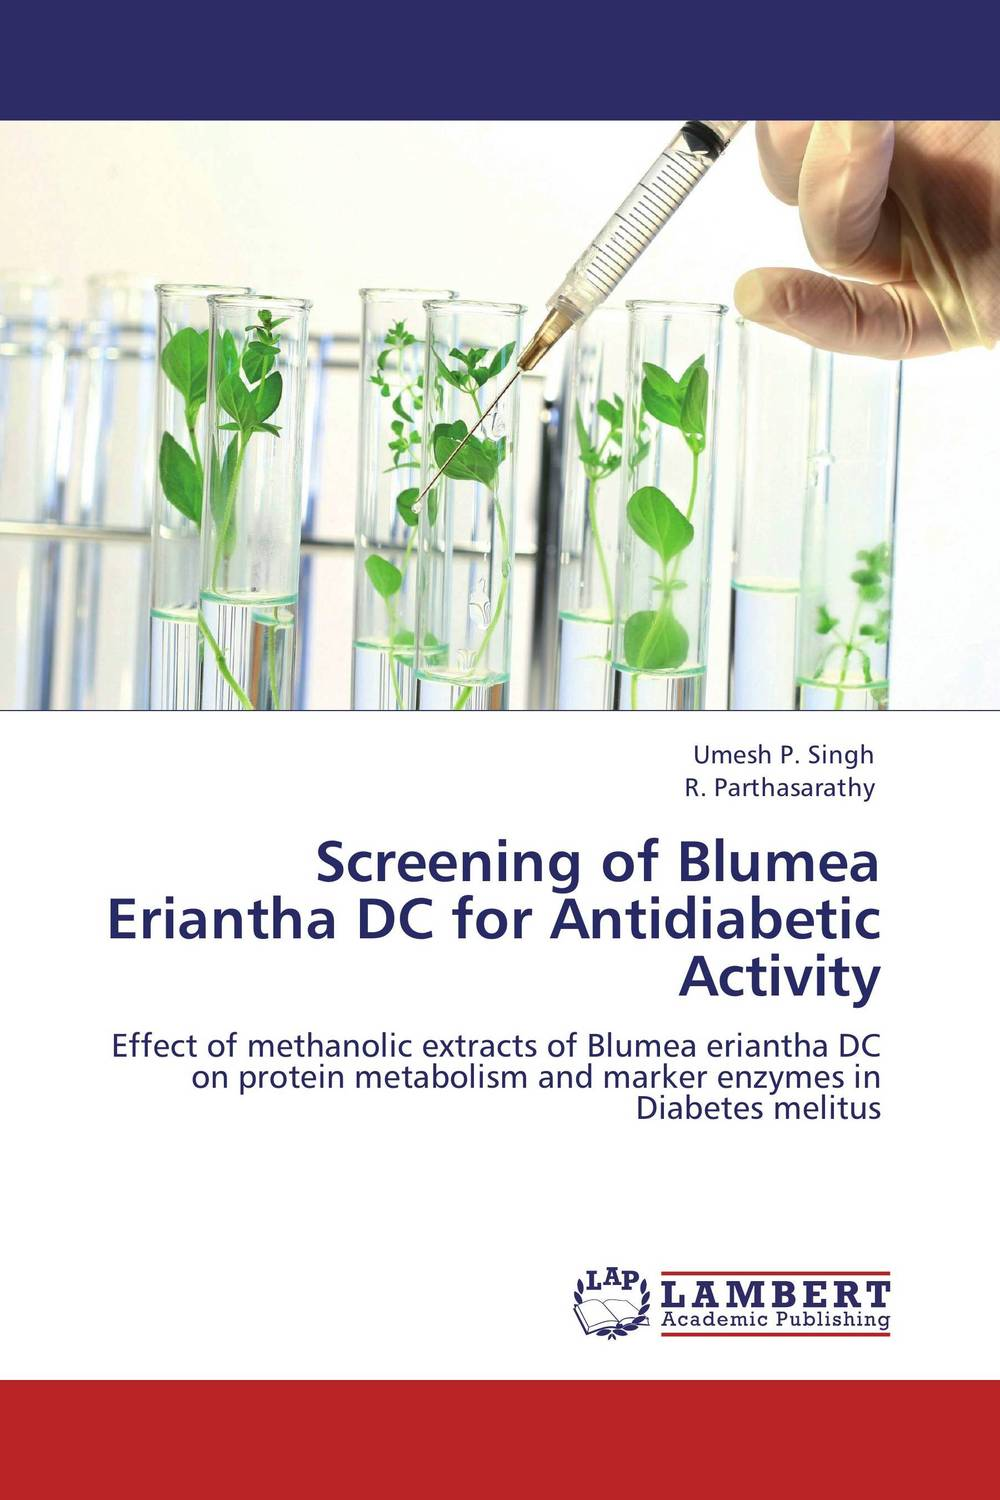 Screening of Blumea Eriantha DC for Antidiabetic Activity sonali singh sunil kumar prajapati and rahul pratap singh preparation and characterization of prednisolone loaded microsponges